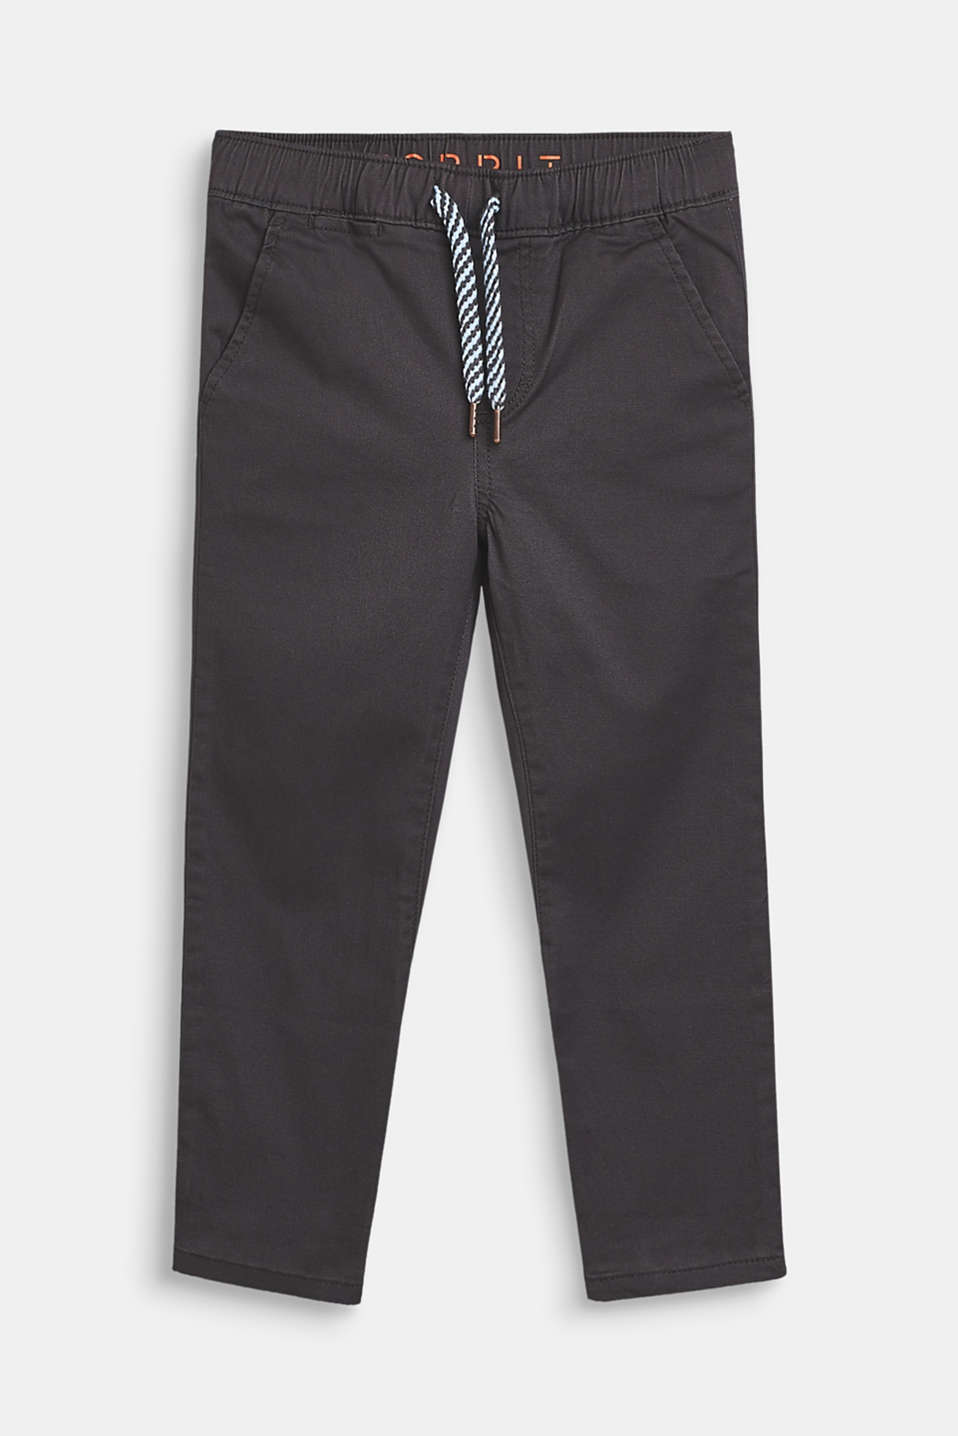 Esprit - Stretch cotton tracksuit bottoms